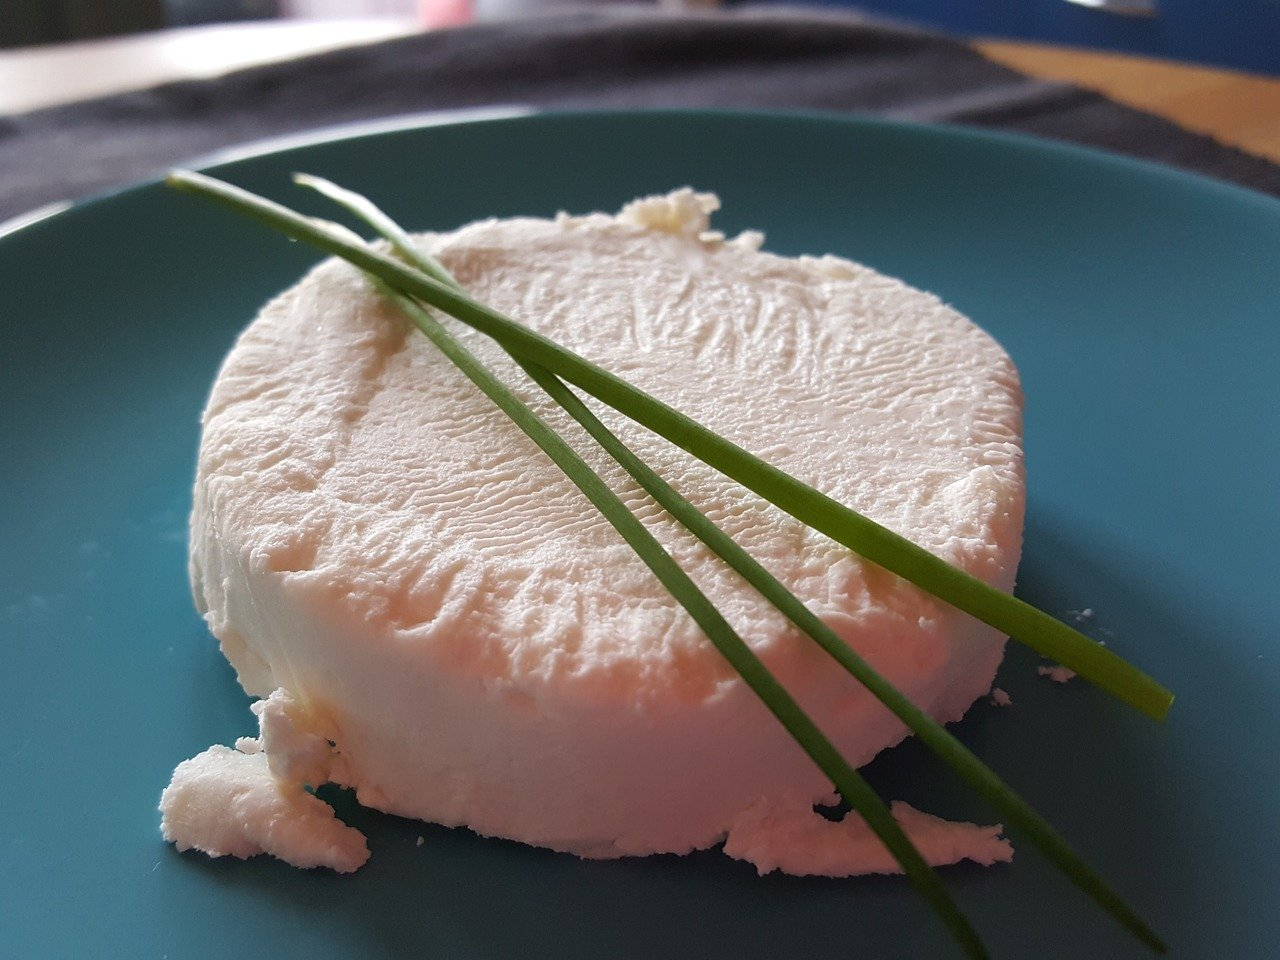 Wheel of goat cheese